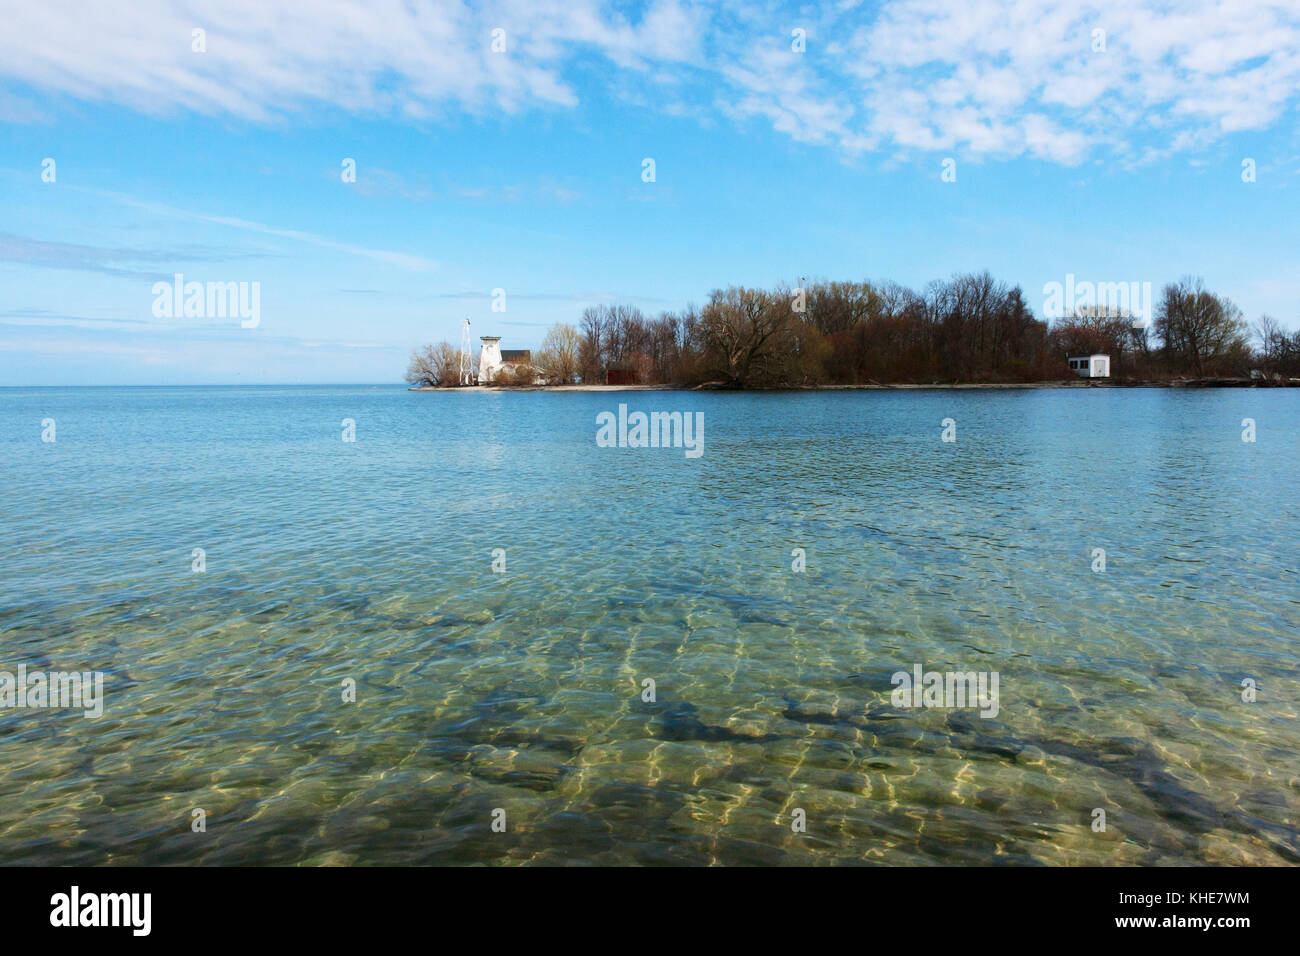 Lake and lighthouse in Prince Edward County, Ontario - Stock Image